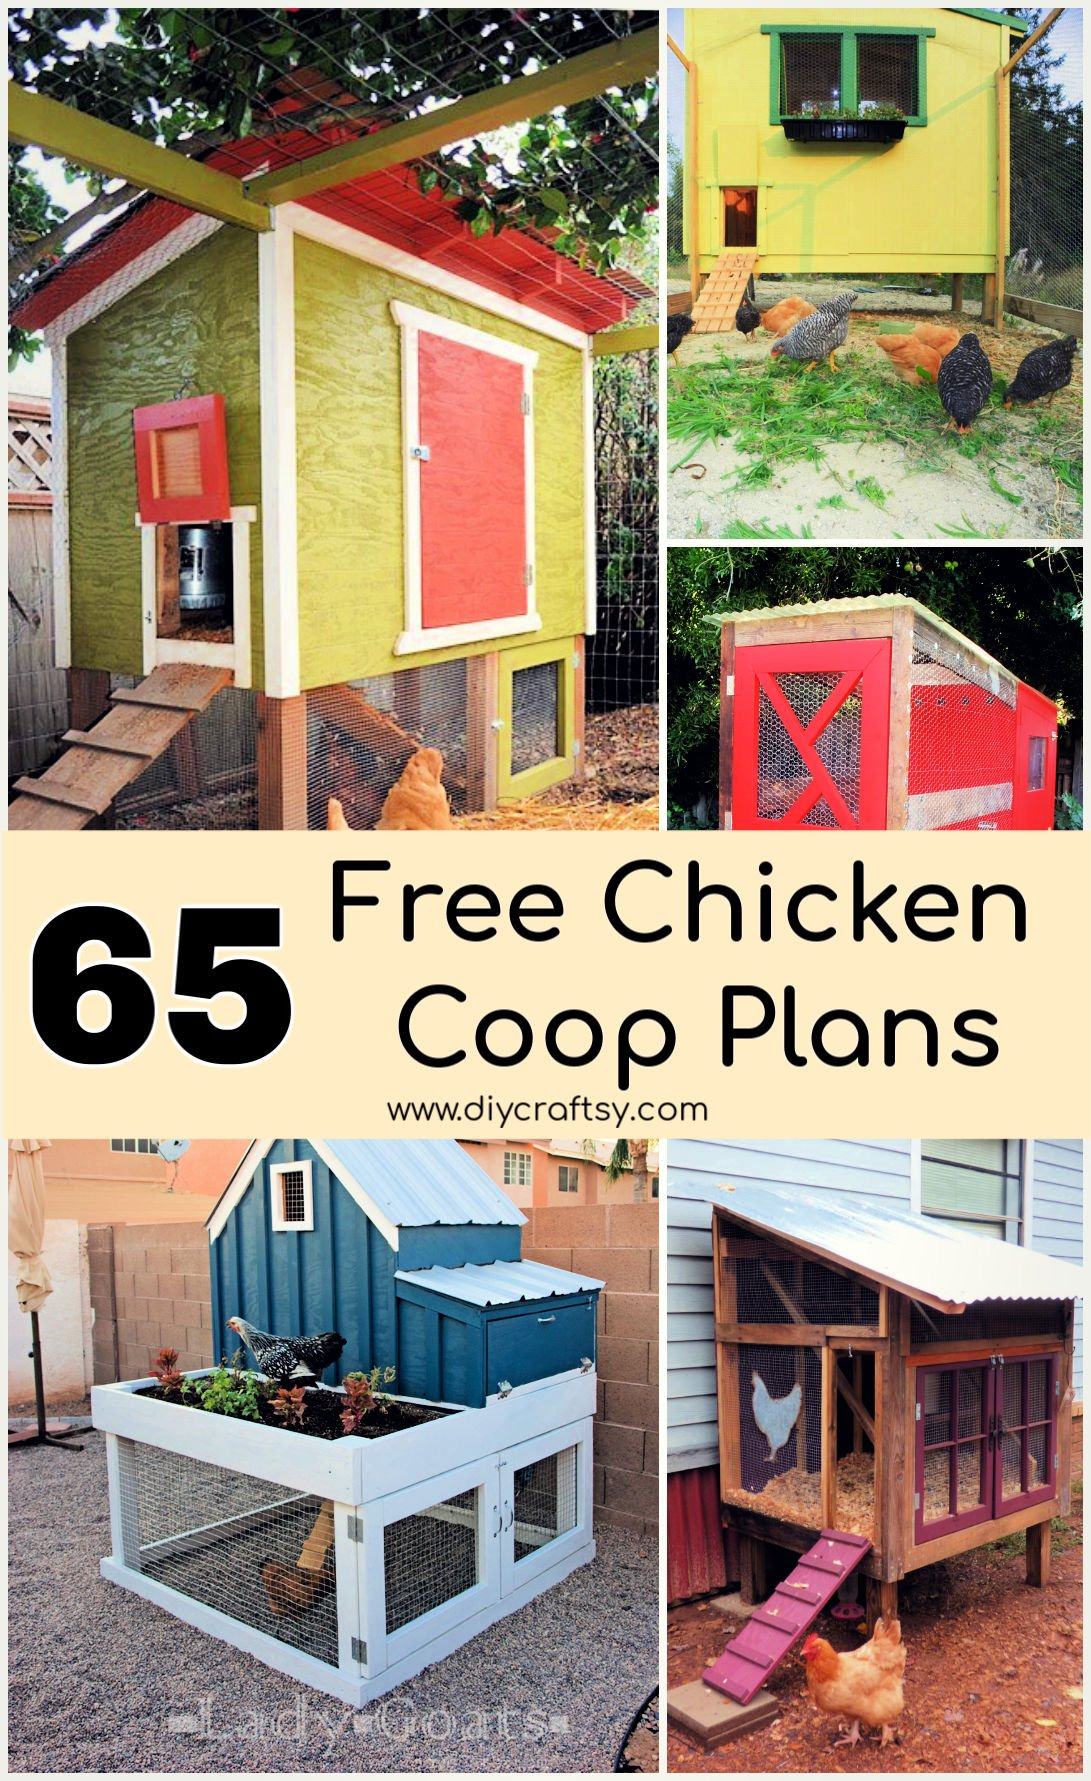 37 DIY Chicken Coop Plans That Are Bud Friendly DIY Projects